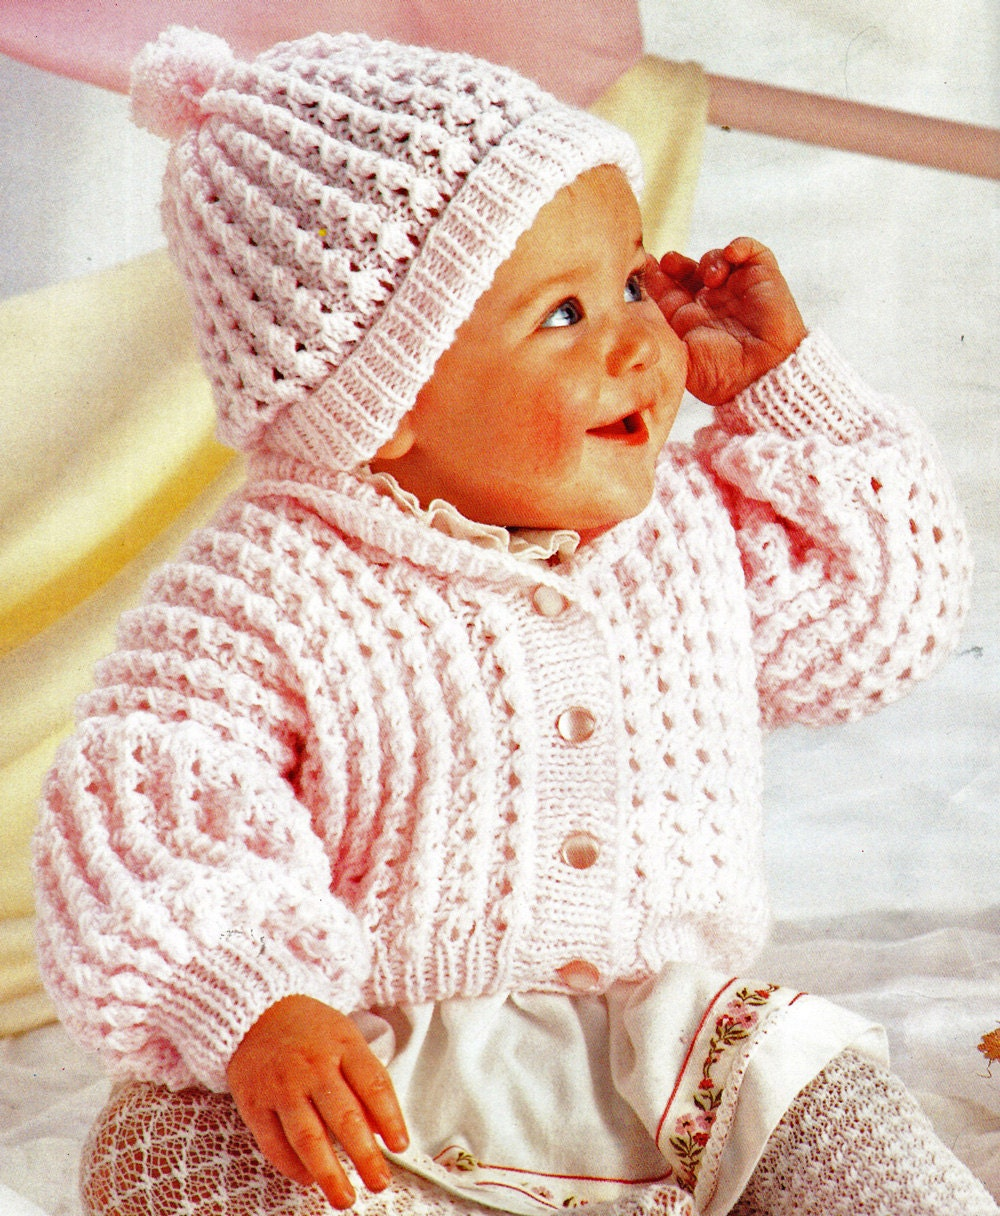 Baby Knitting Pattern, Baby Sweater Knitting Pattern, Newborn and Toddler Kni...